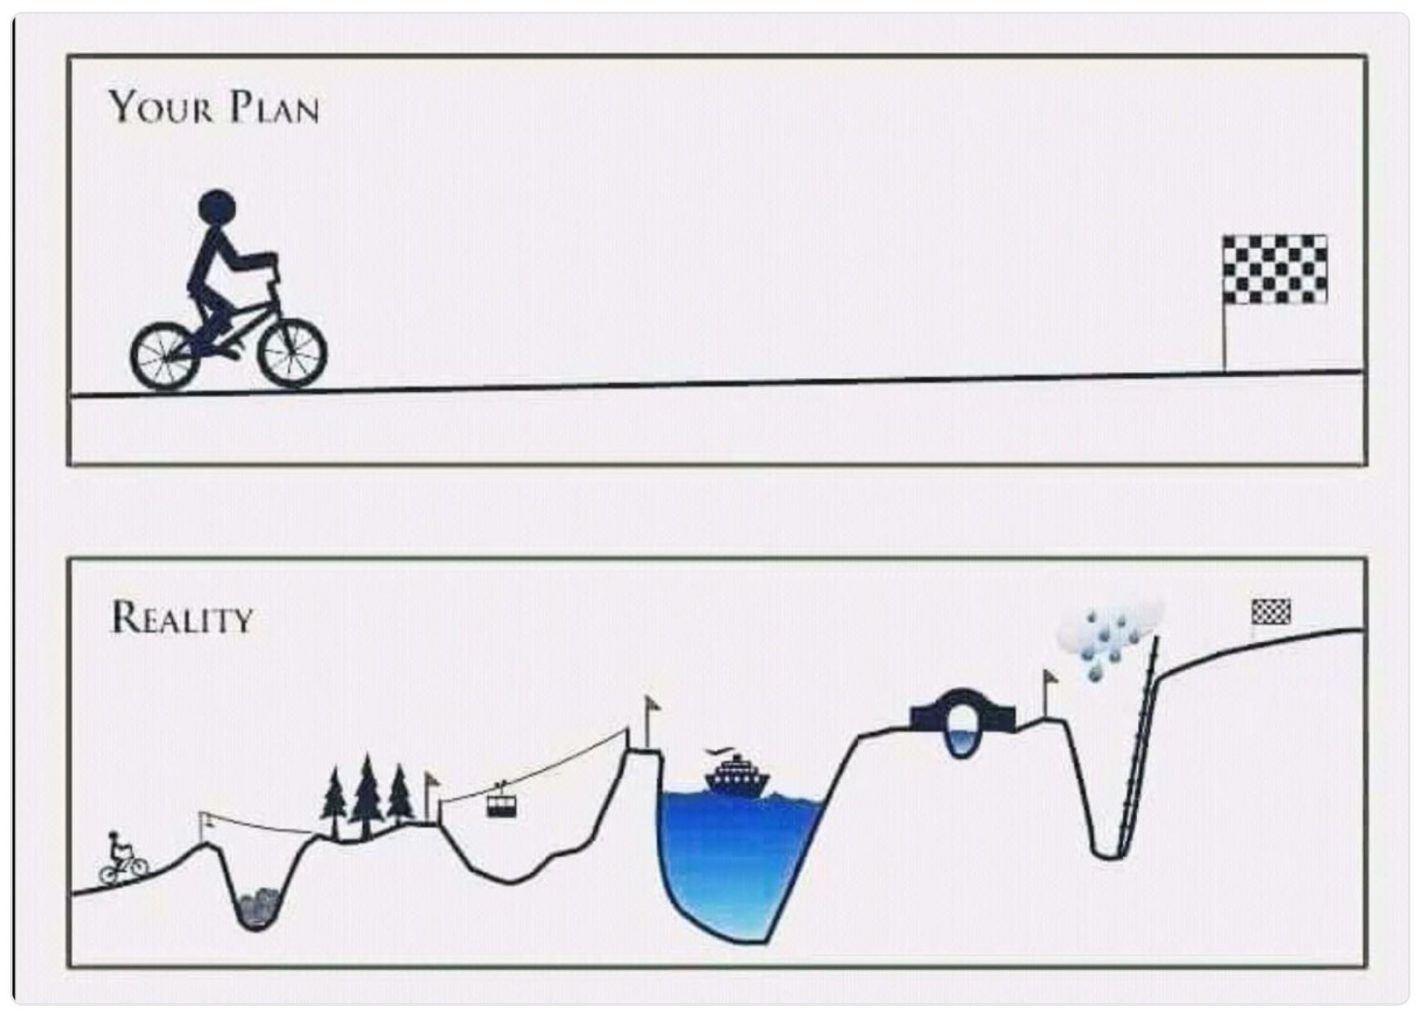 Image: a line drawing of a smooth ride up hill (your plan) and a bumpy ride (reality)